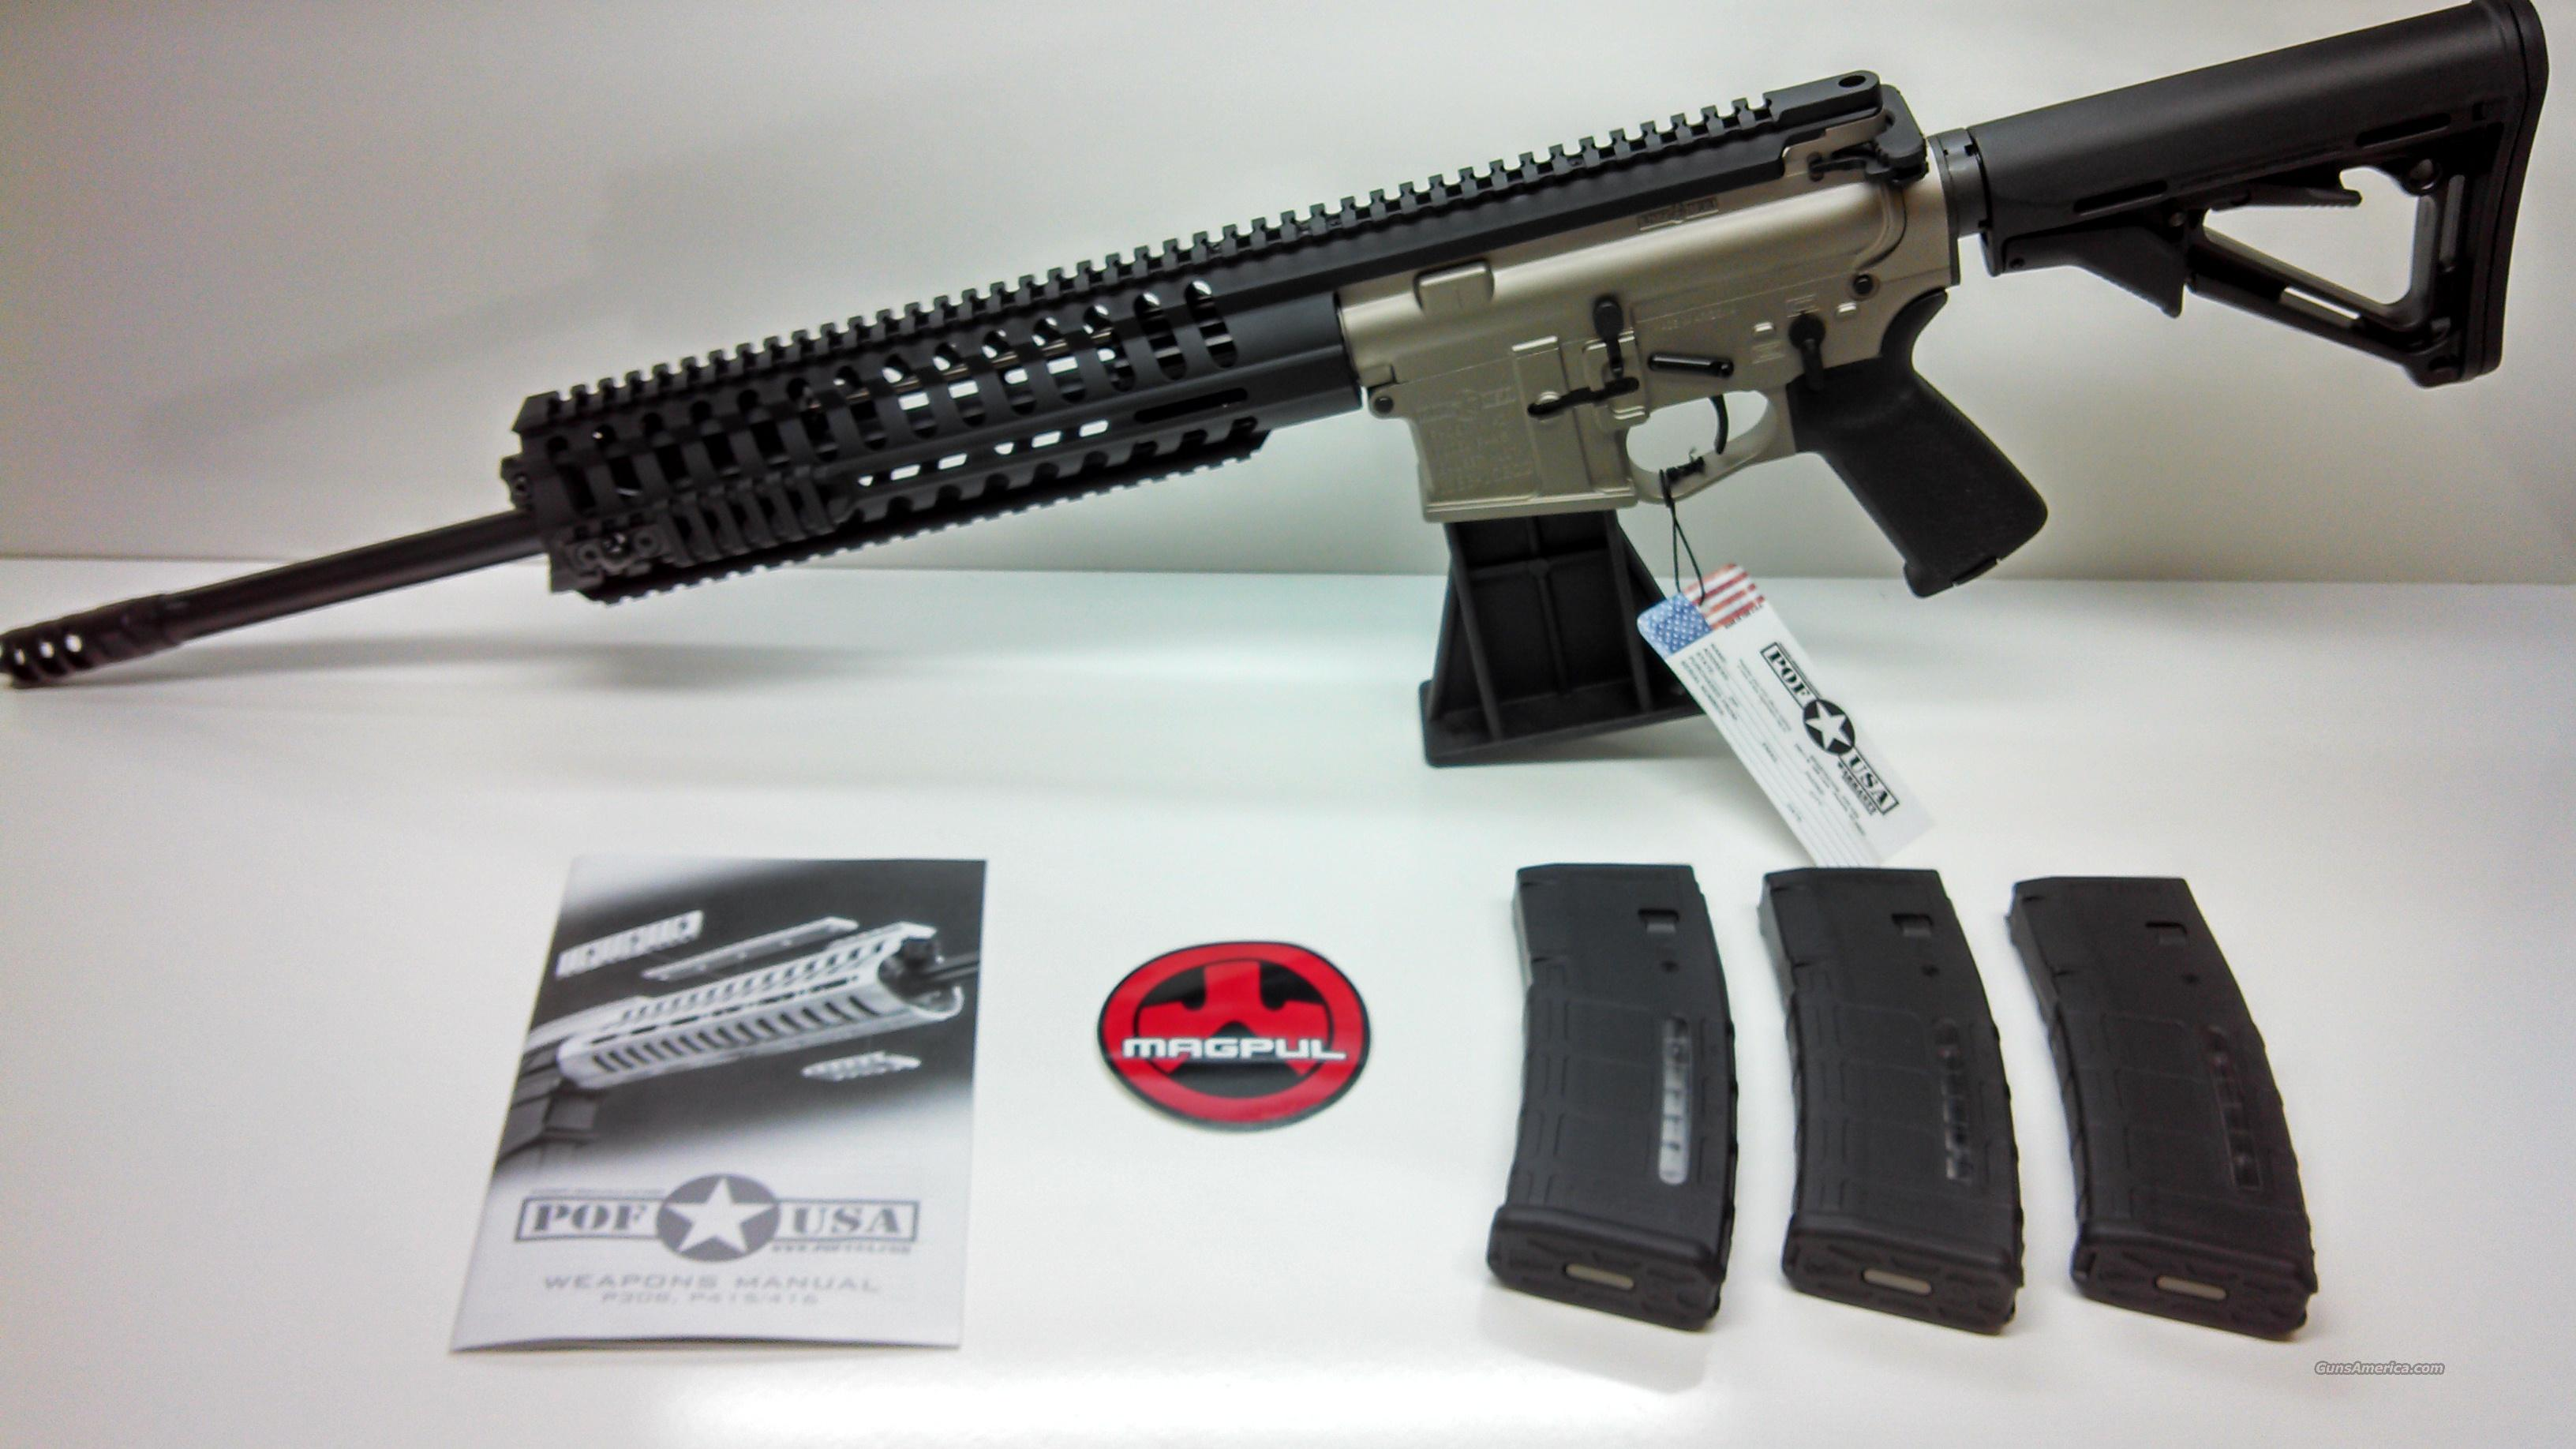 POF-USA P415 18'' SERIES T RAIL 5.56NATO NP3 COATED - PMAG MAGAZINES INCLUDED  Guns > Rifles > Tactical/Sniper Rifles